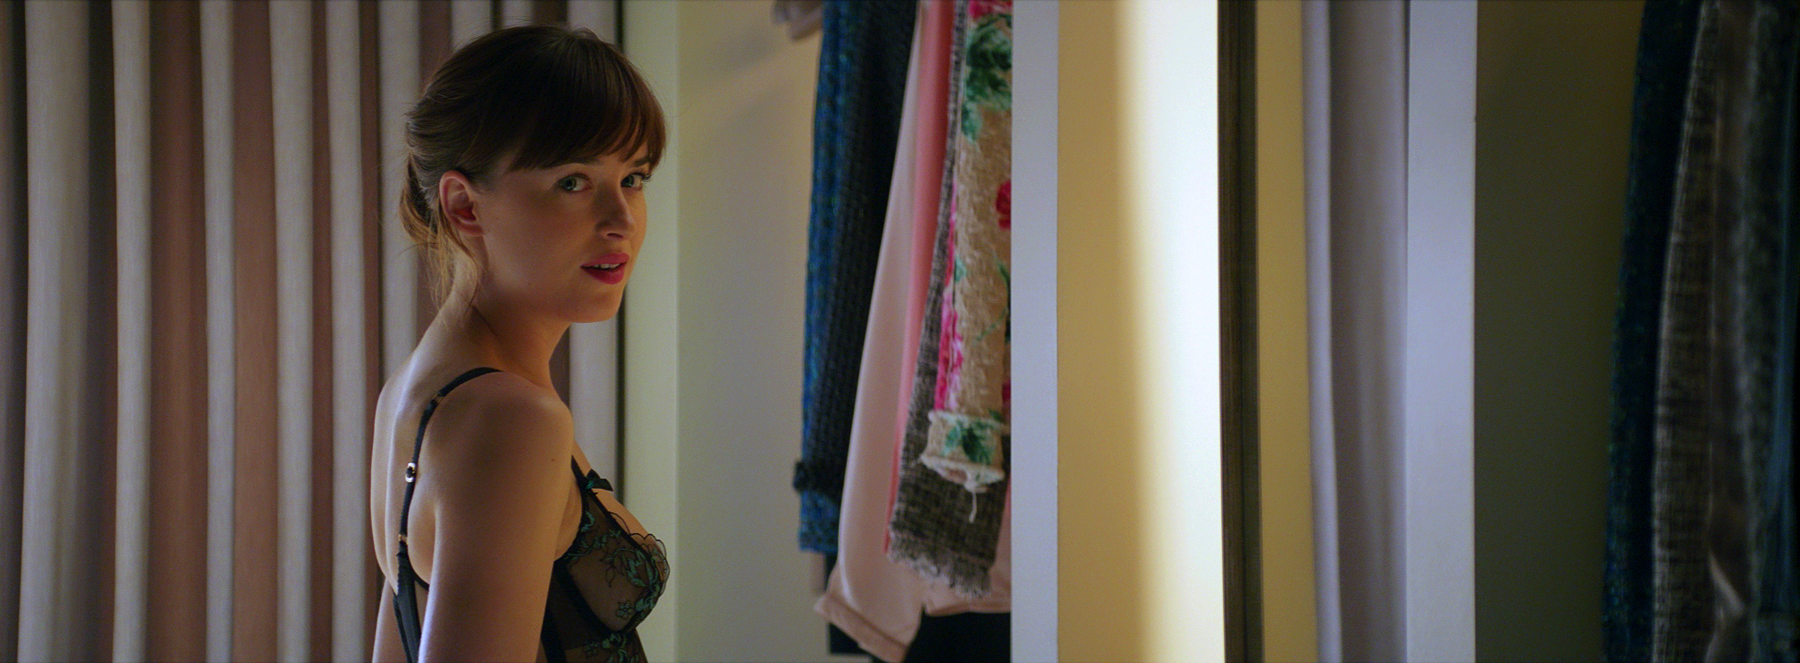 "Ana (Dakota Johnson) in very little clothes in ""Fifty Shades Darker"". (United International Pictures)"